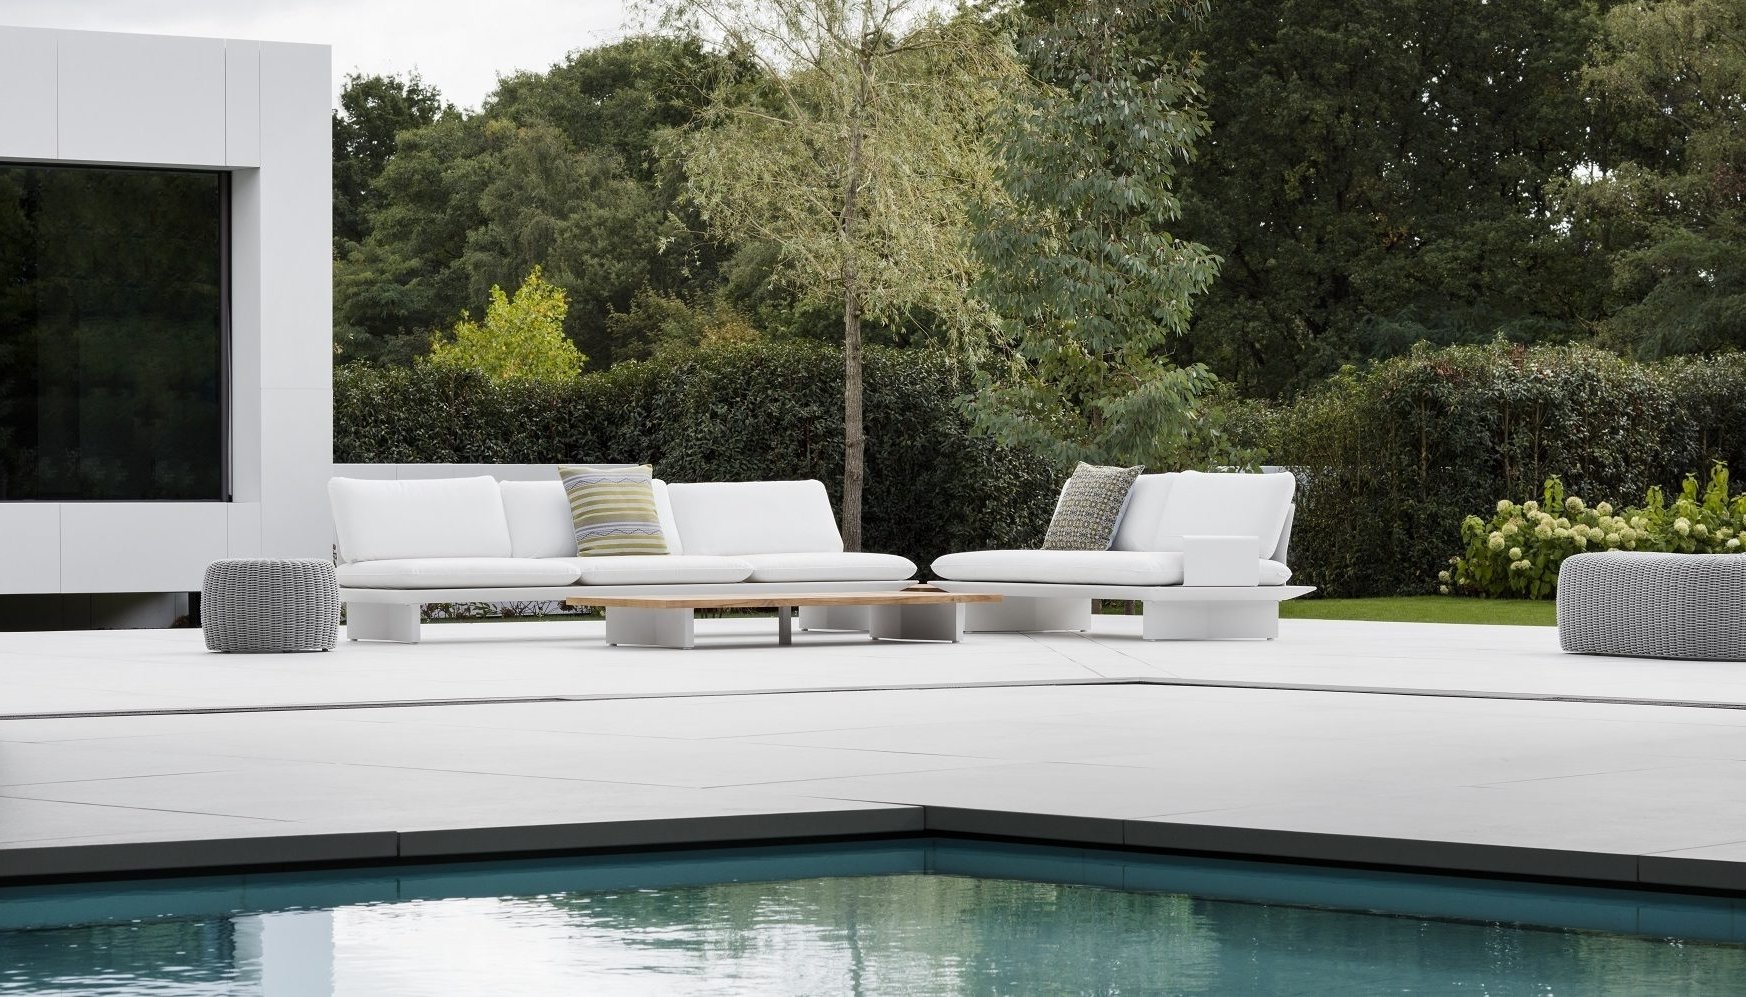 Well Known High End Patio Umbrellas Intended For Outdoor Furniture & High End Patio Furniture Store (View 19 of 20)